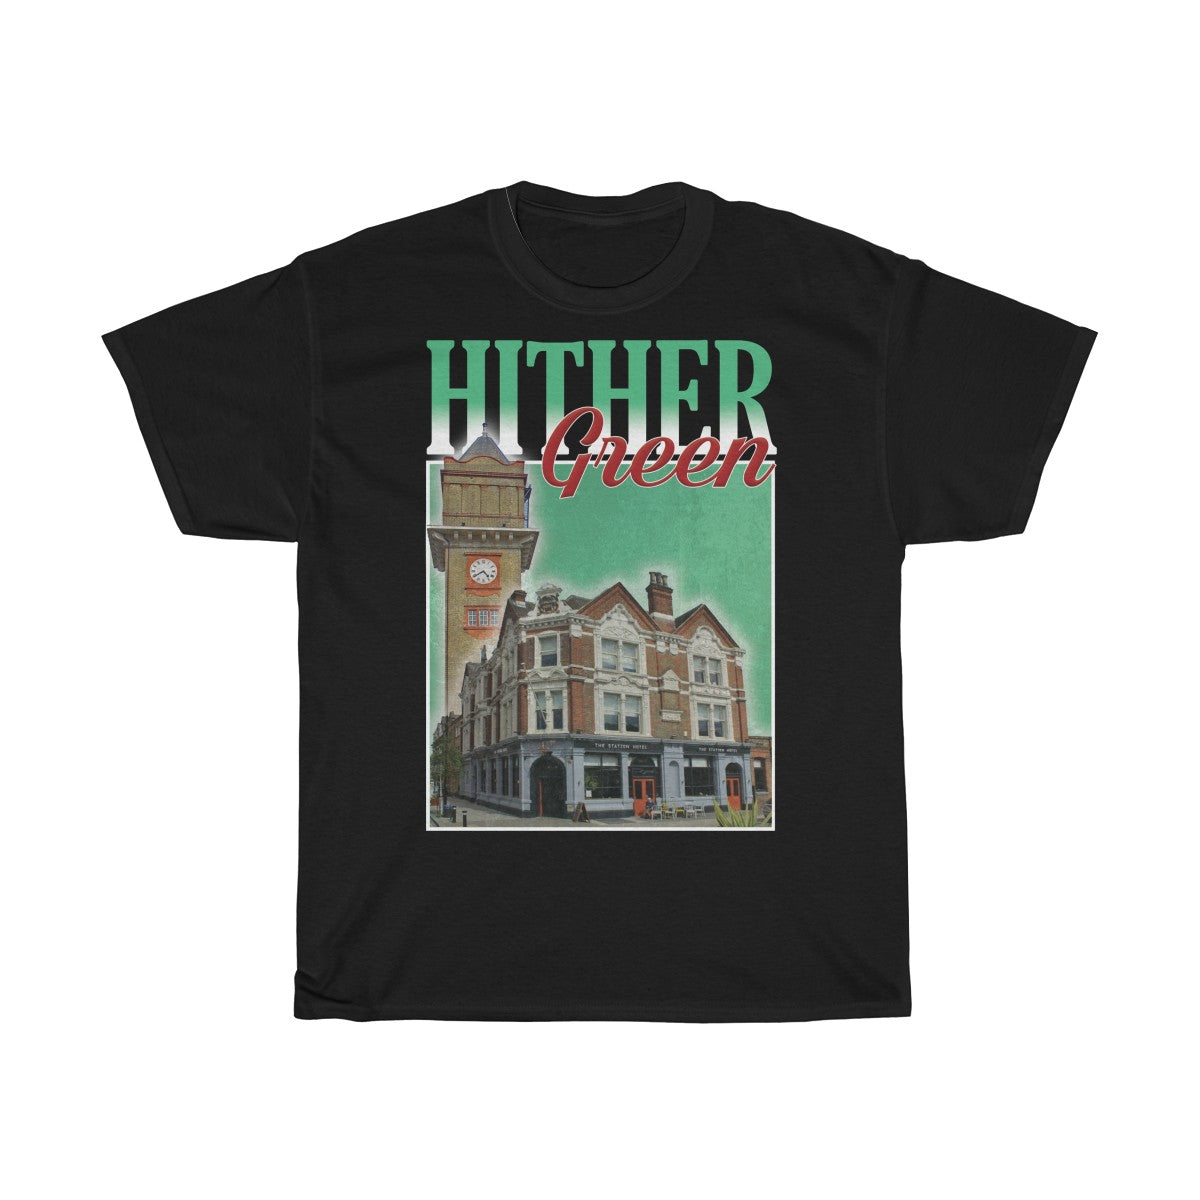 Hither Green 90s Style Unisex T-Shirt